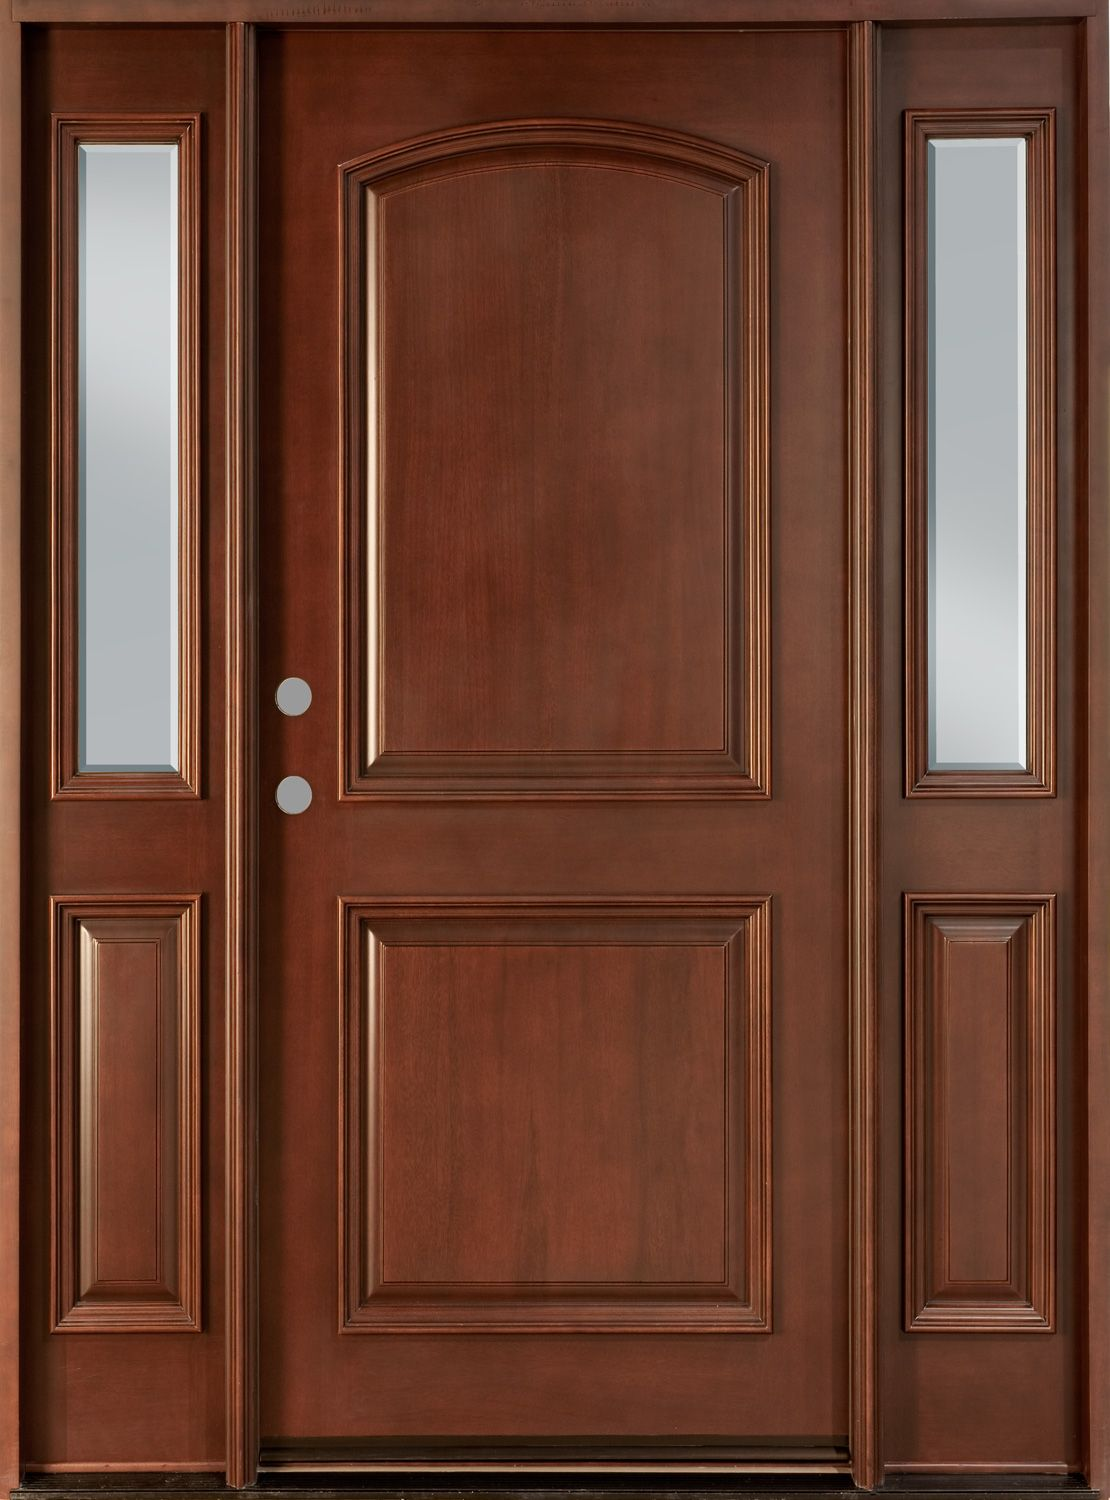 Front Door Custom Single With 2 Sidelites Solid Wood With Dark Mahogany Finish Classic Mo Wood Front Entry Doors Solid Wood Front Door Wooden Front Doors